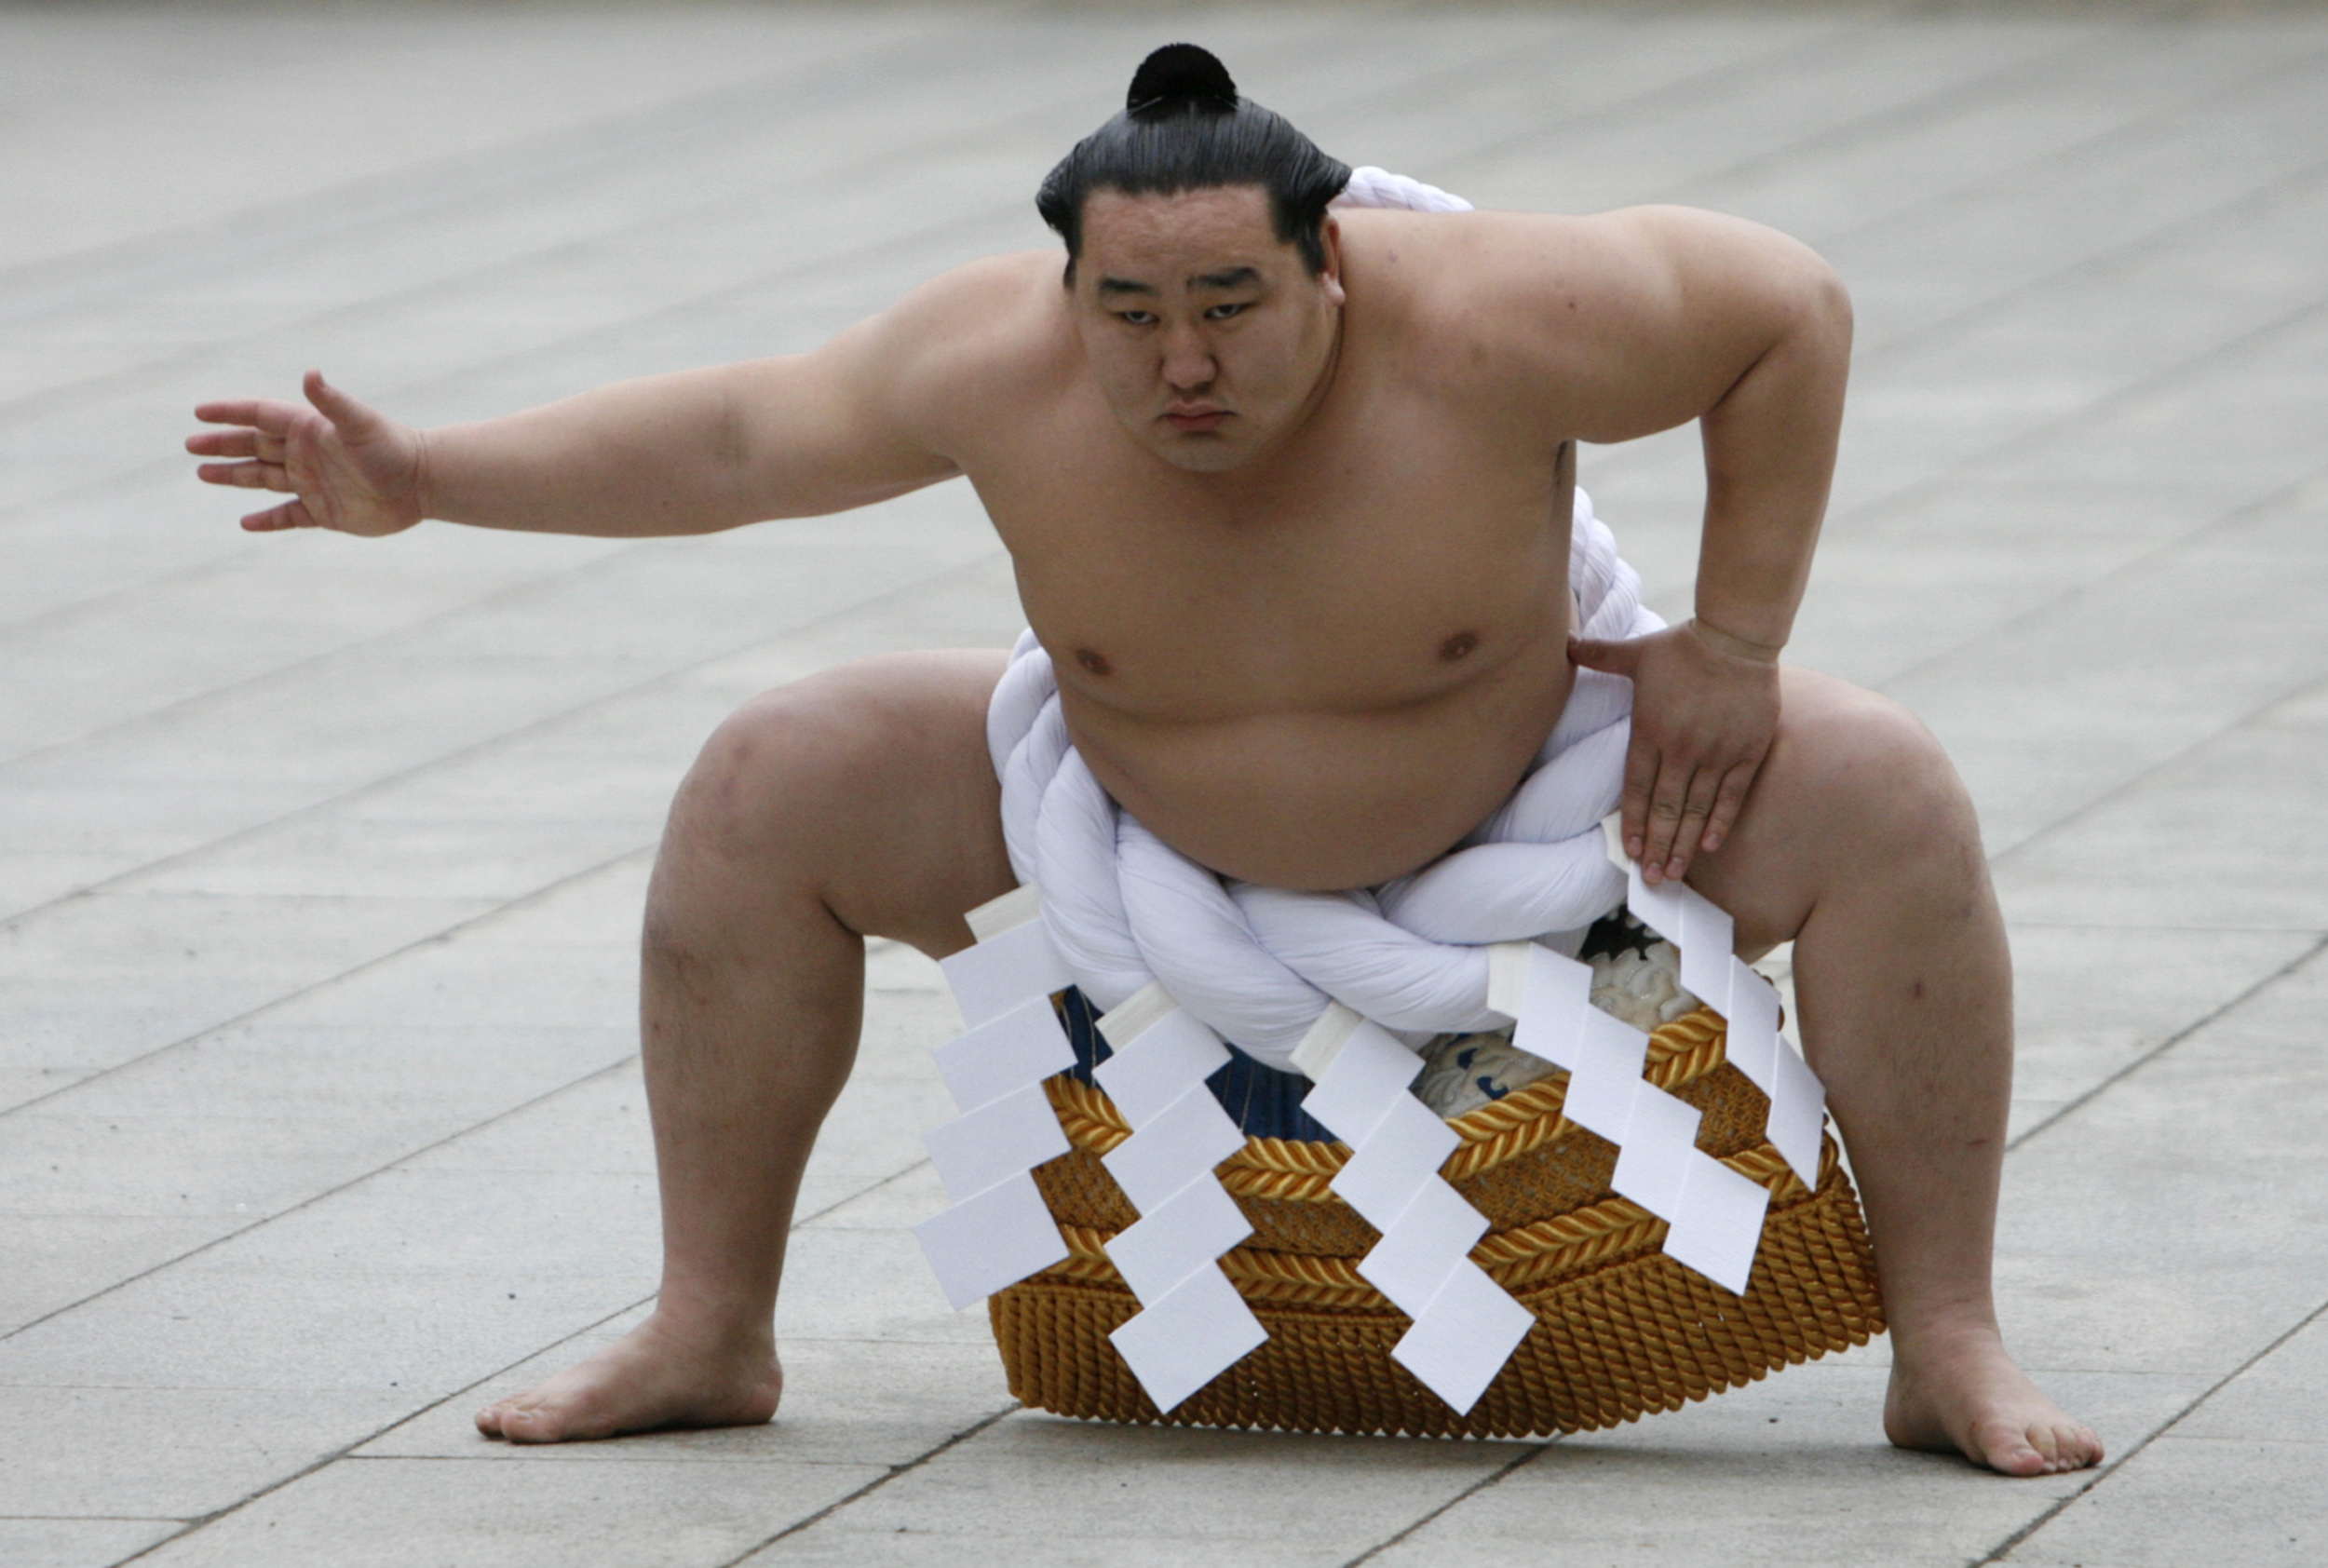 Sumo Wrestler Wallpapers High Quality Download 2500x1684